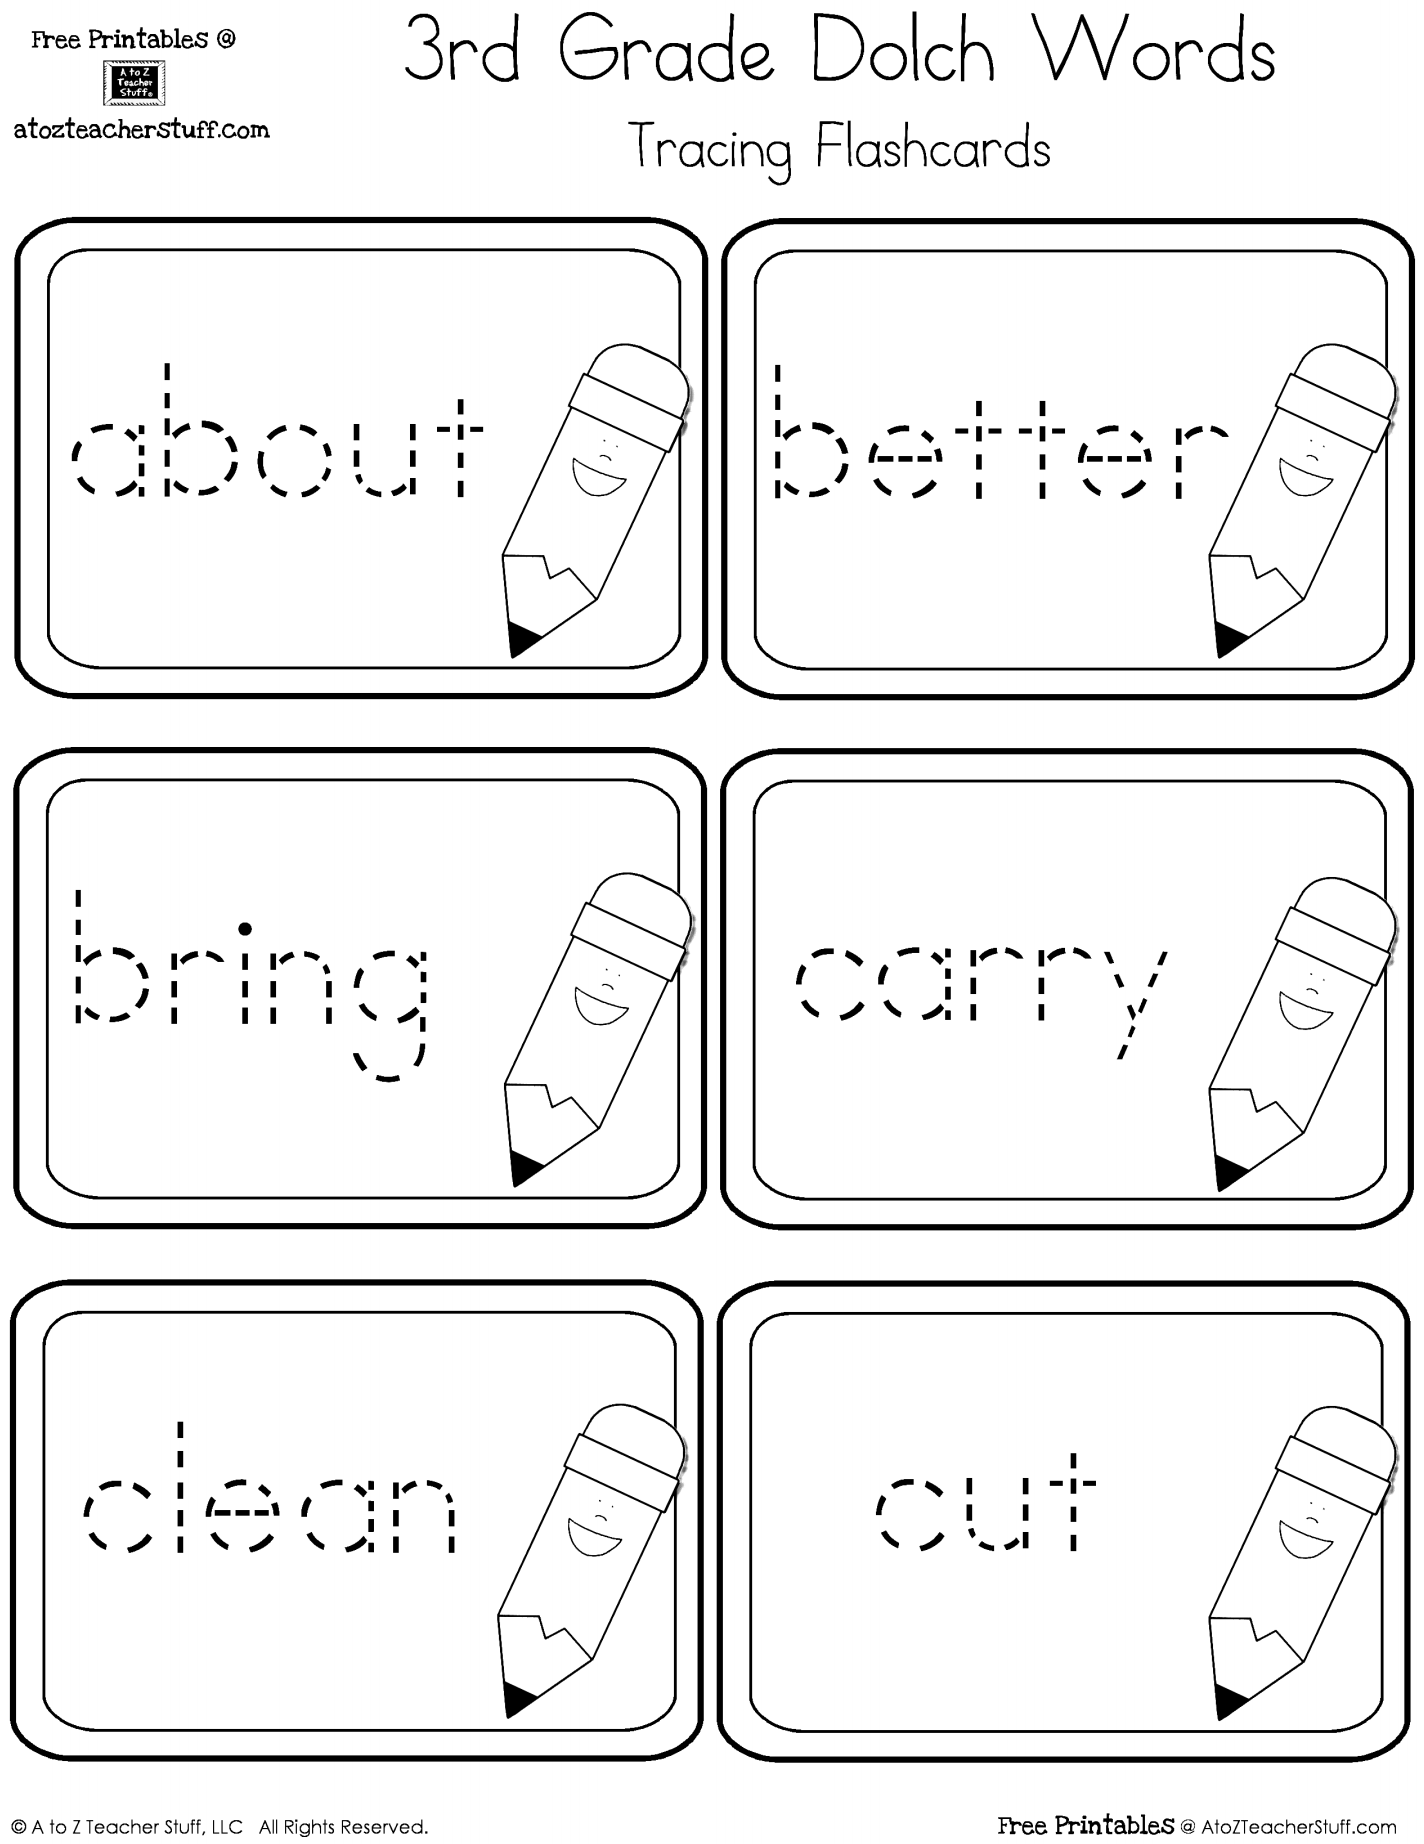 Third Grade Dolch Sight Words Tracing Flashcards | A to Z Teacher ...